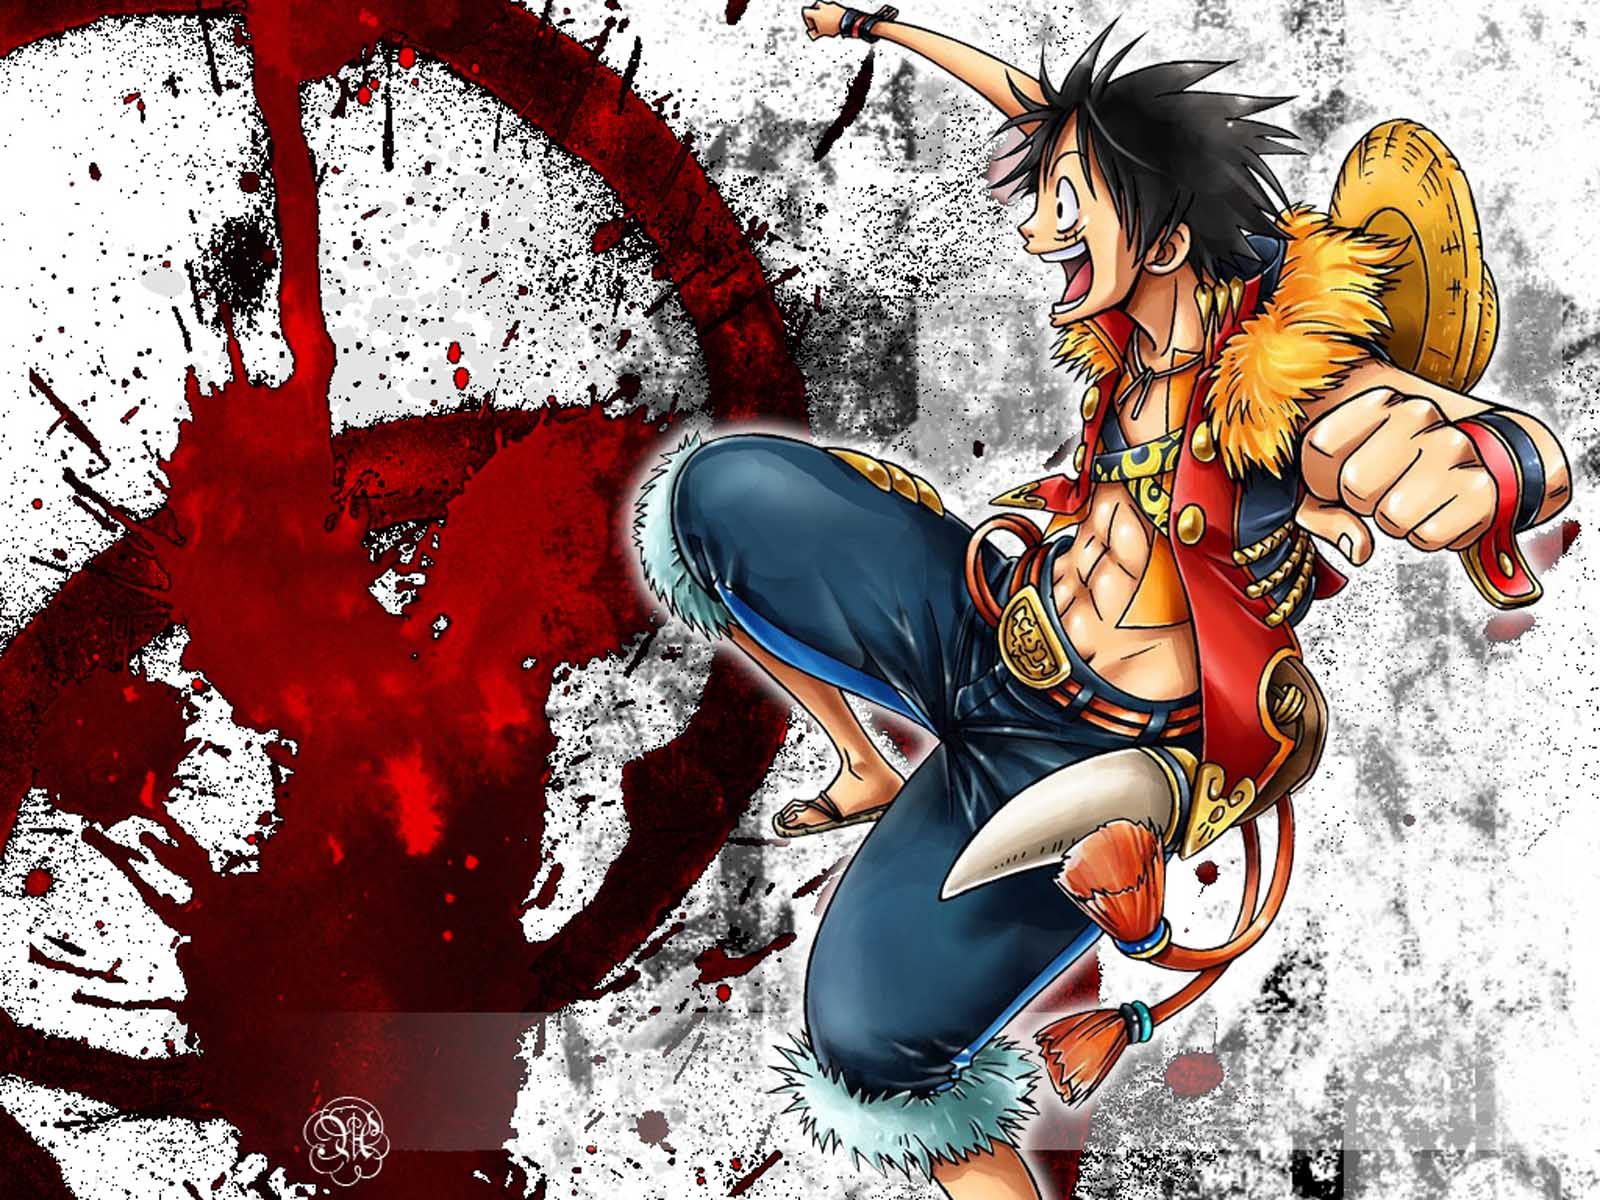 One Piece Wallpaper Luffy 14 Backgrounds | Wallruru.com